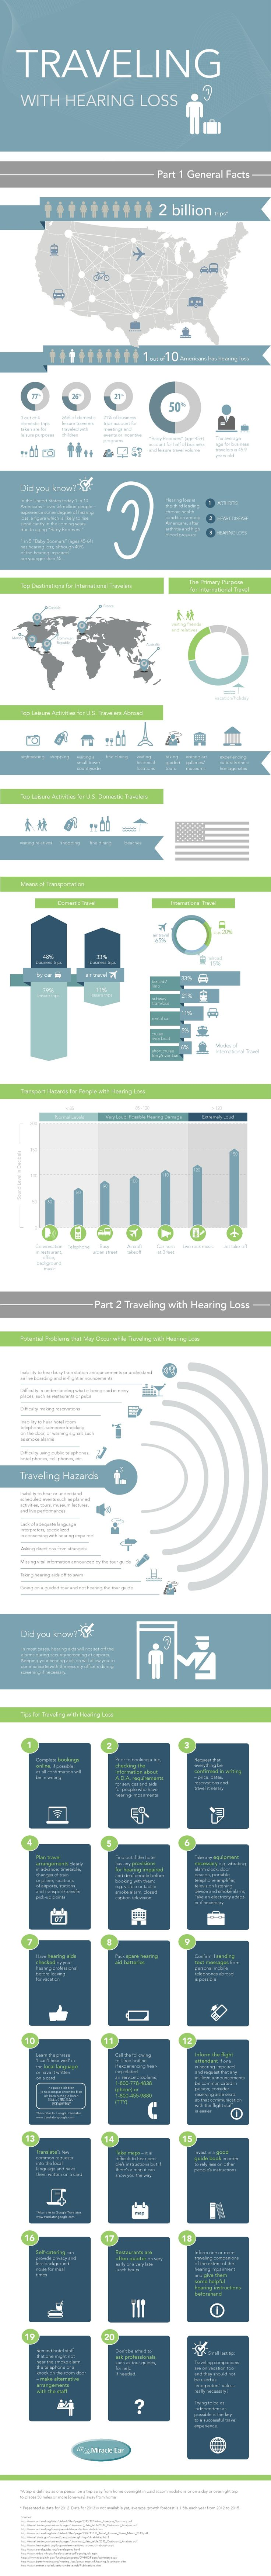 17 best images about hearing impairment traveling hearing loss travel hearingloss health infographic